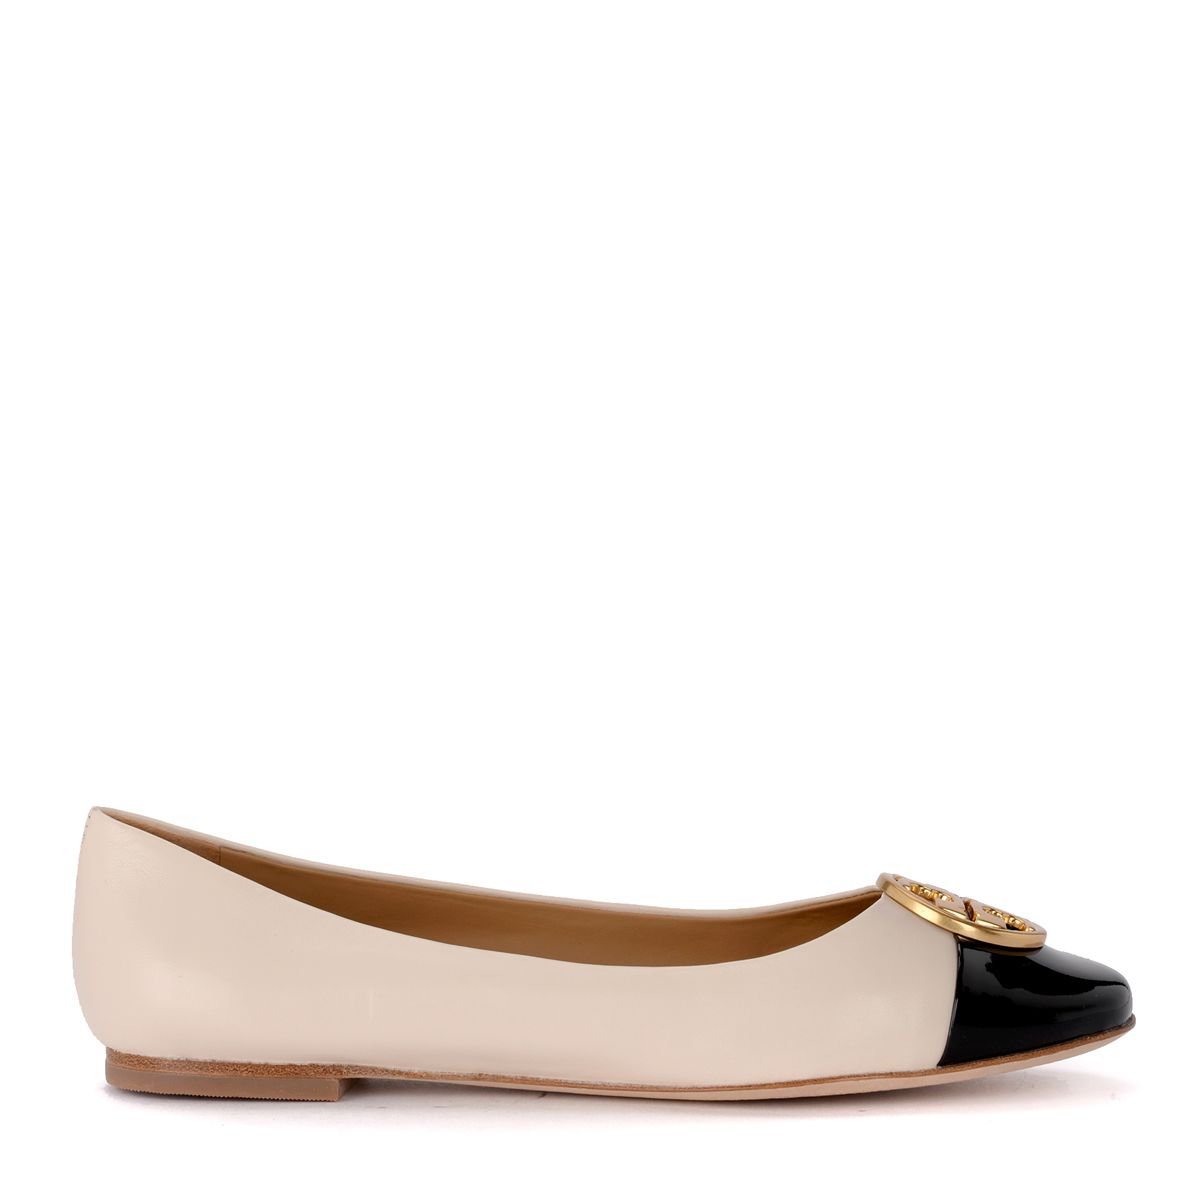 Tory Burch Chelsea Cream Leather And Black Patent Leather Flat Shoes